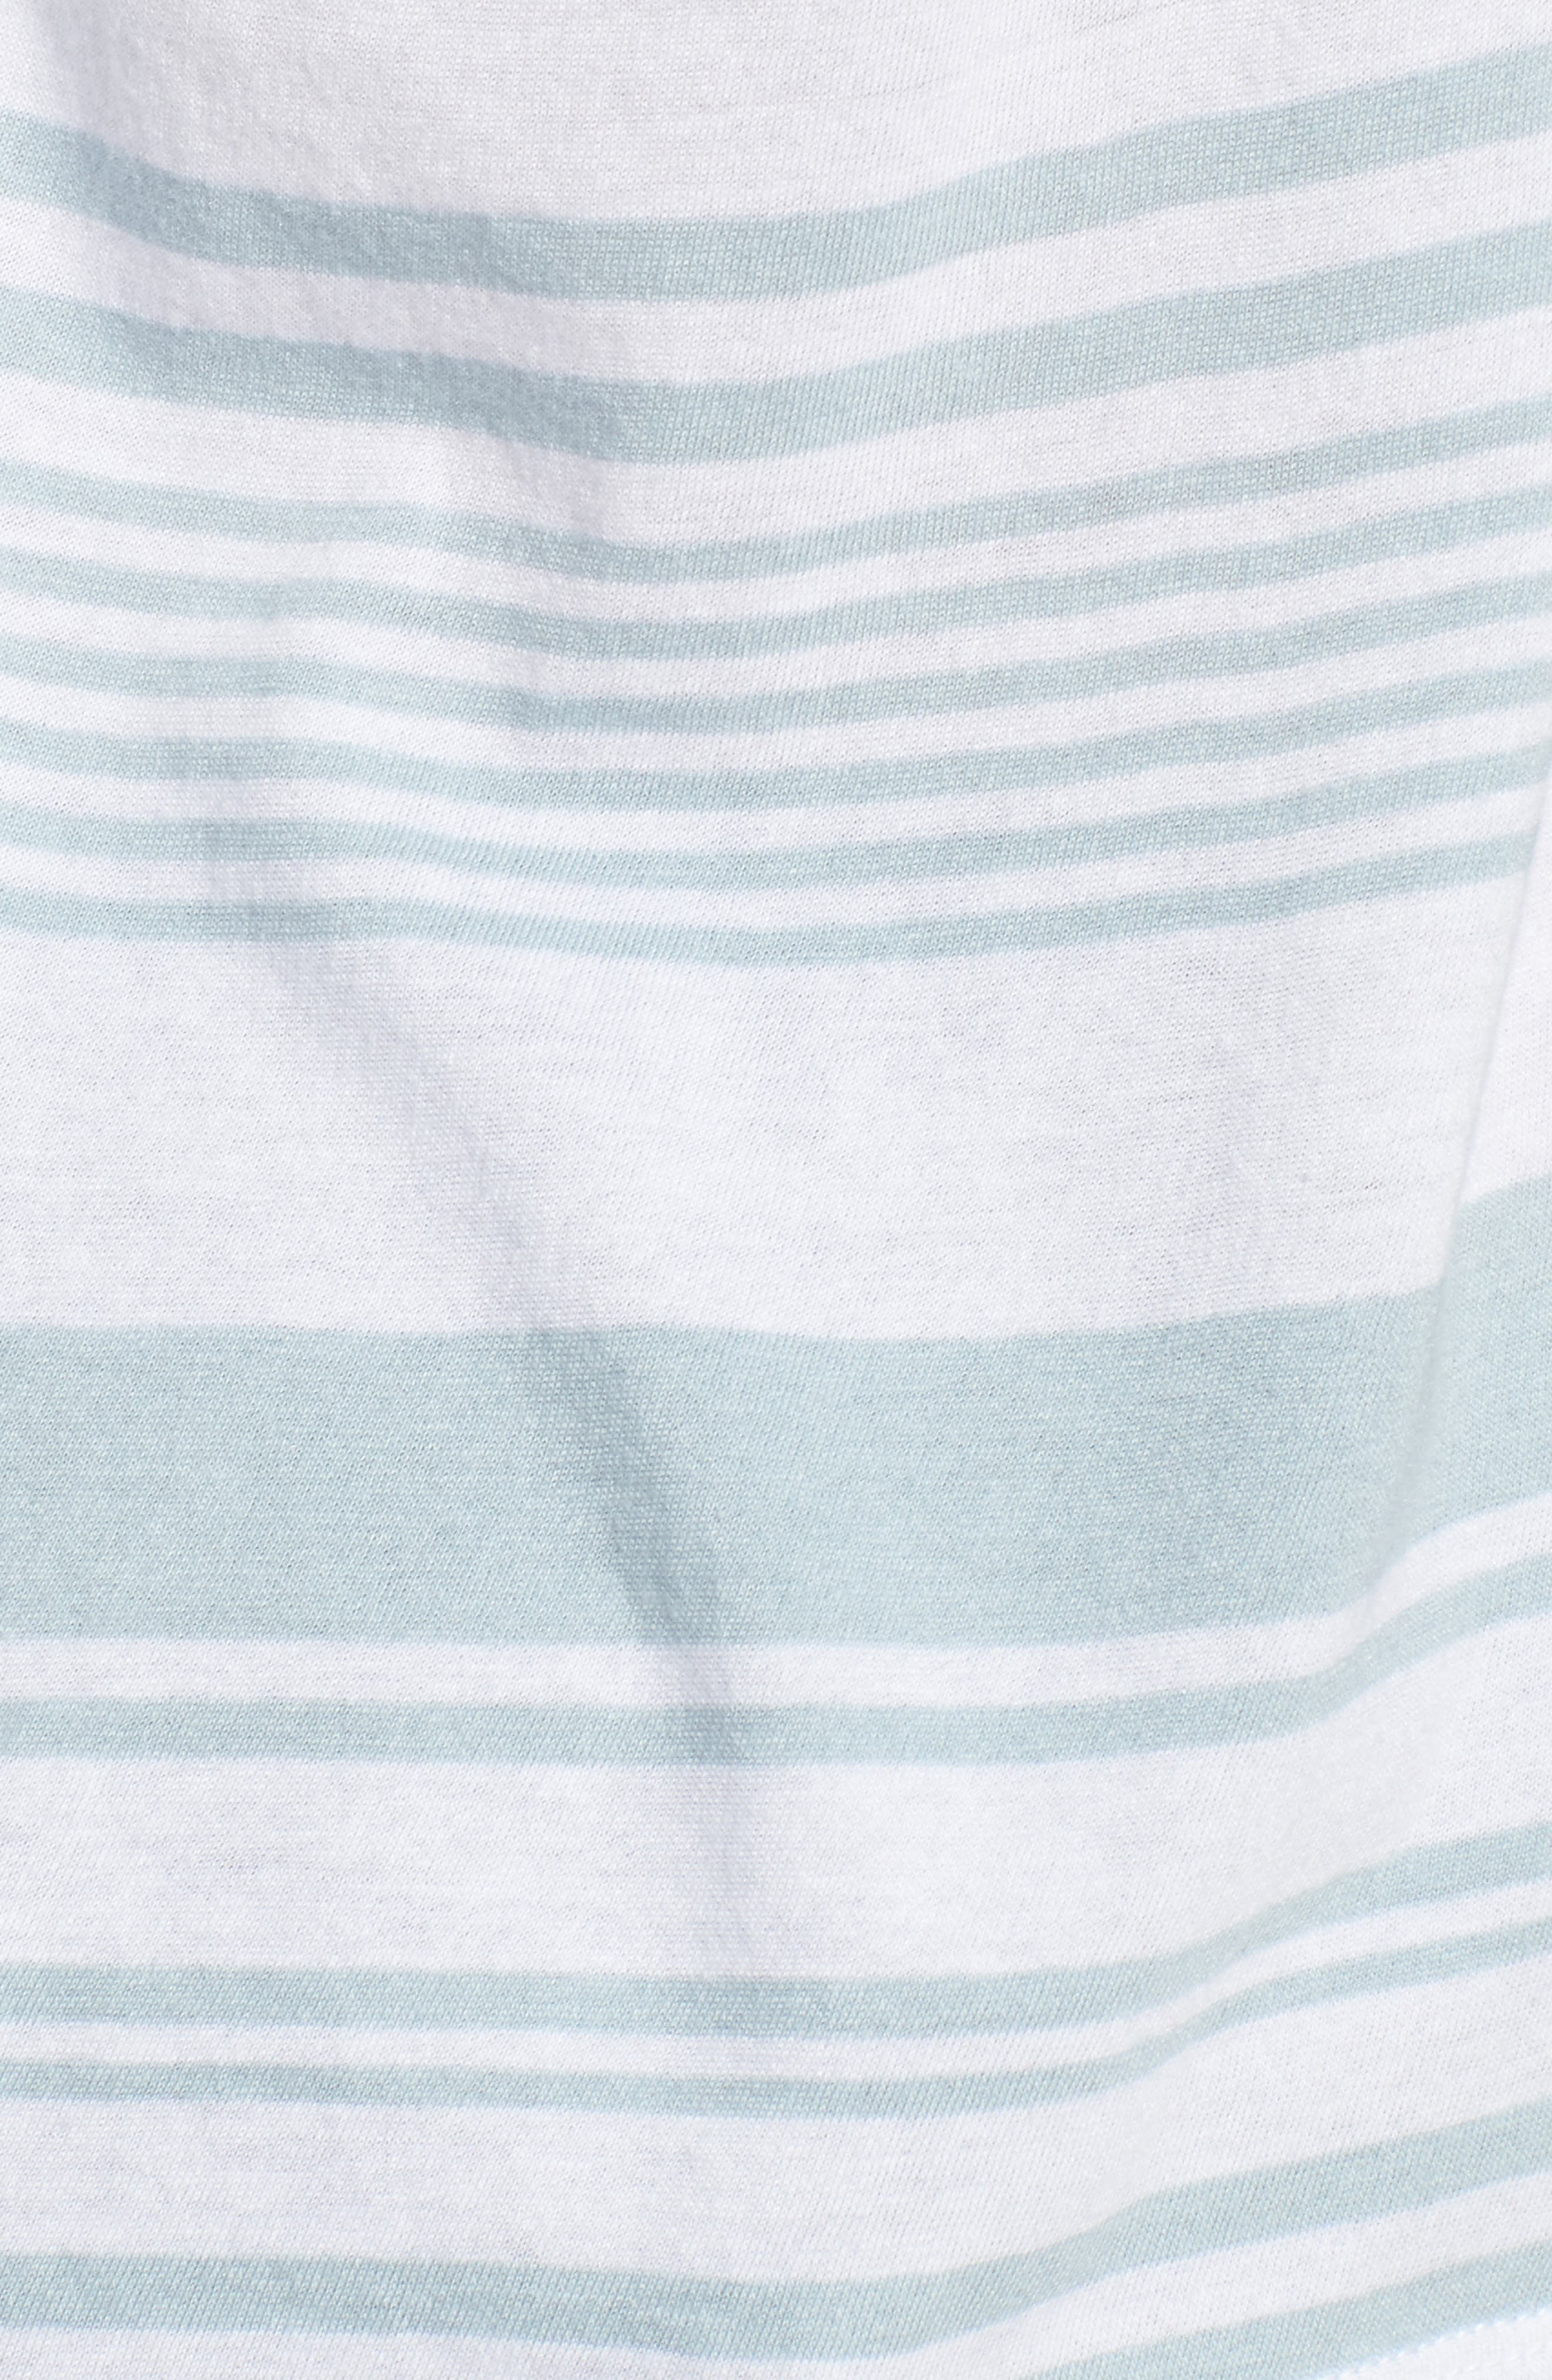 Twist Back Tee,                             Alternate thumbnail 6, color,                             Blue Celestial Monaco Stripe